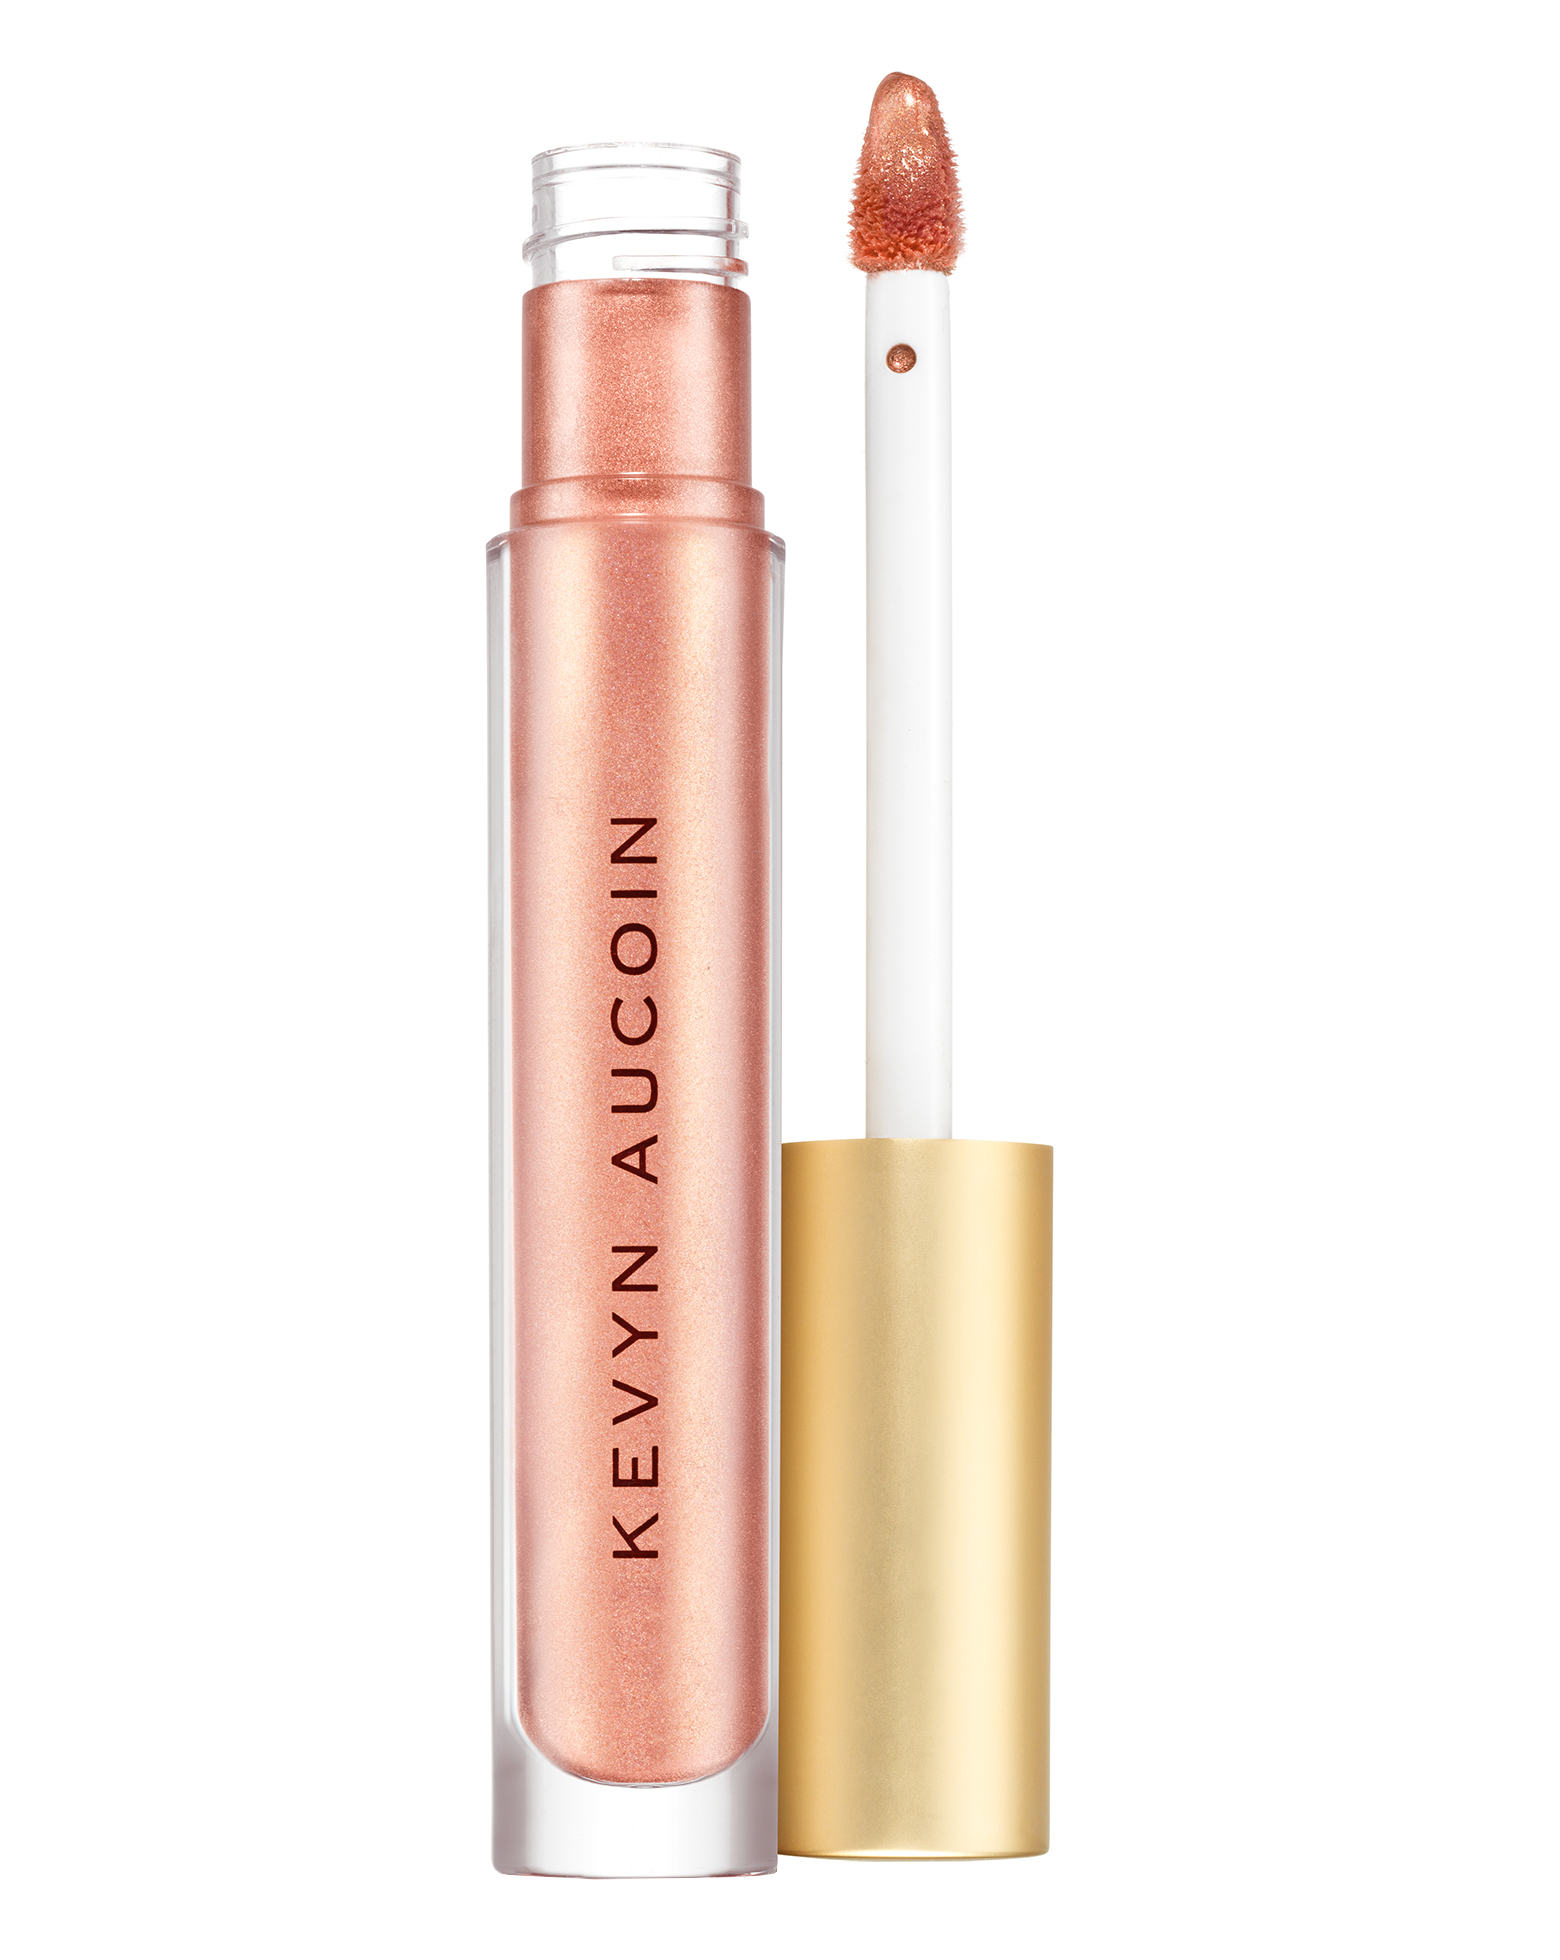 Kevyn Aucoin | The Molten Lip Colour: Molten Metals